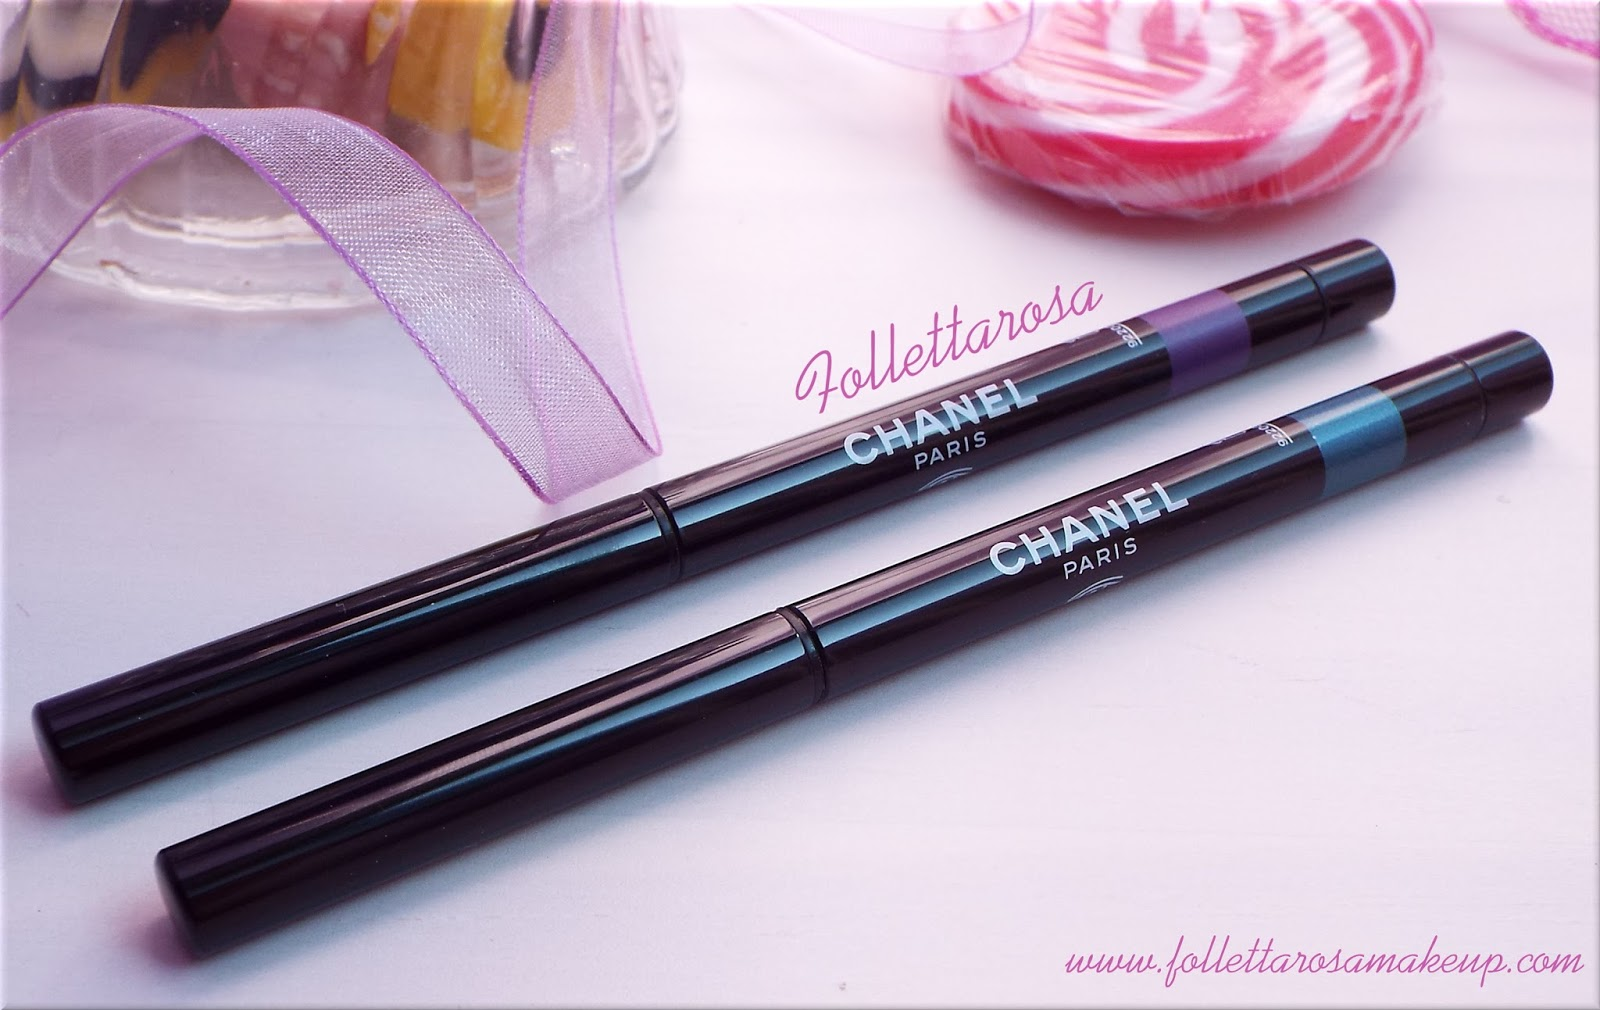 stylo yeux waterproof chanel opinione